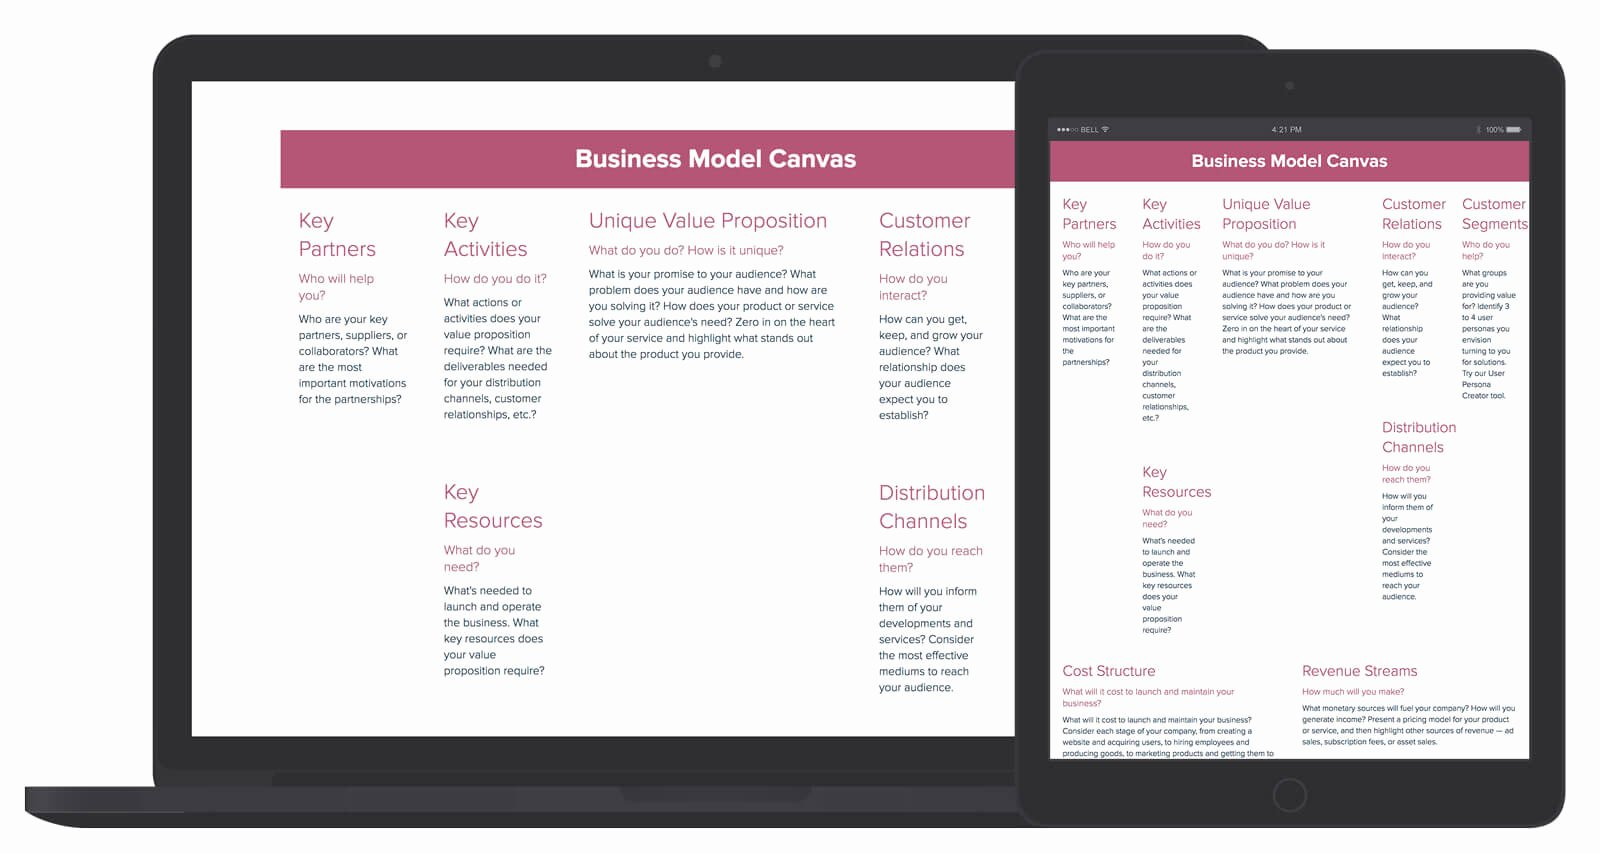 Business Model Canvas Template Word Elegant Business Model Canvas Template and Examples